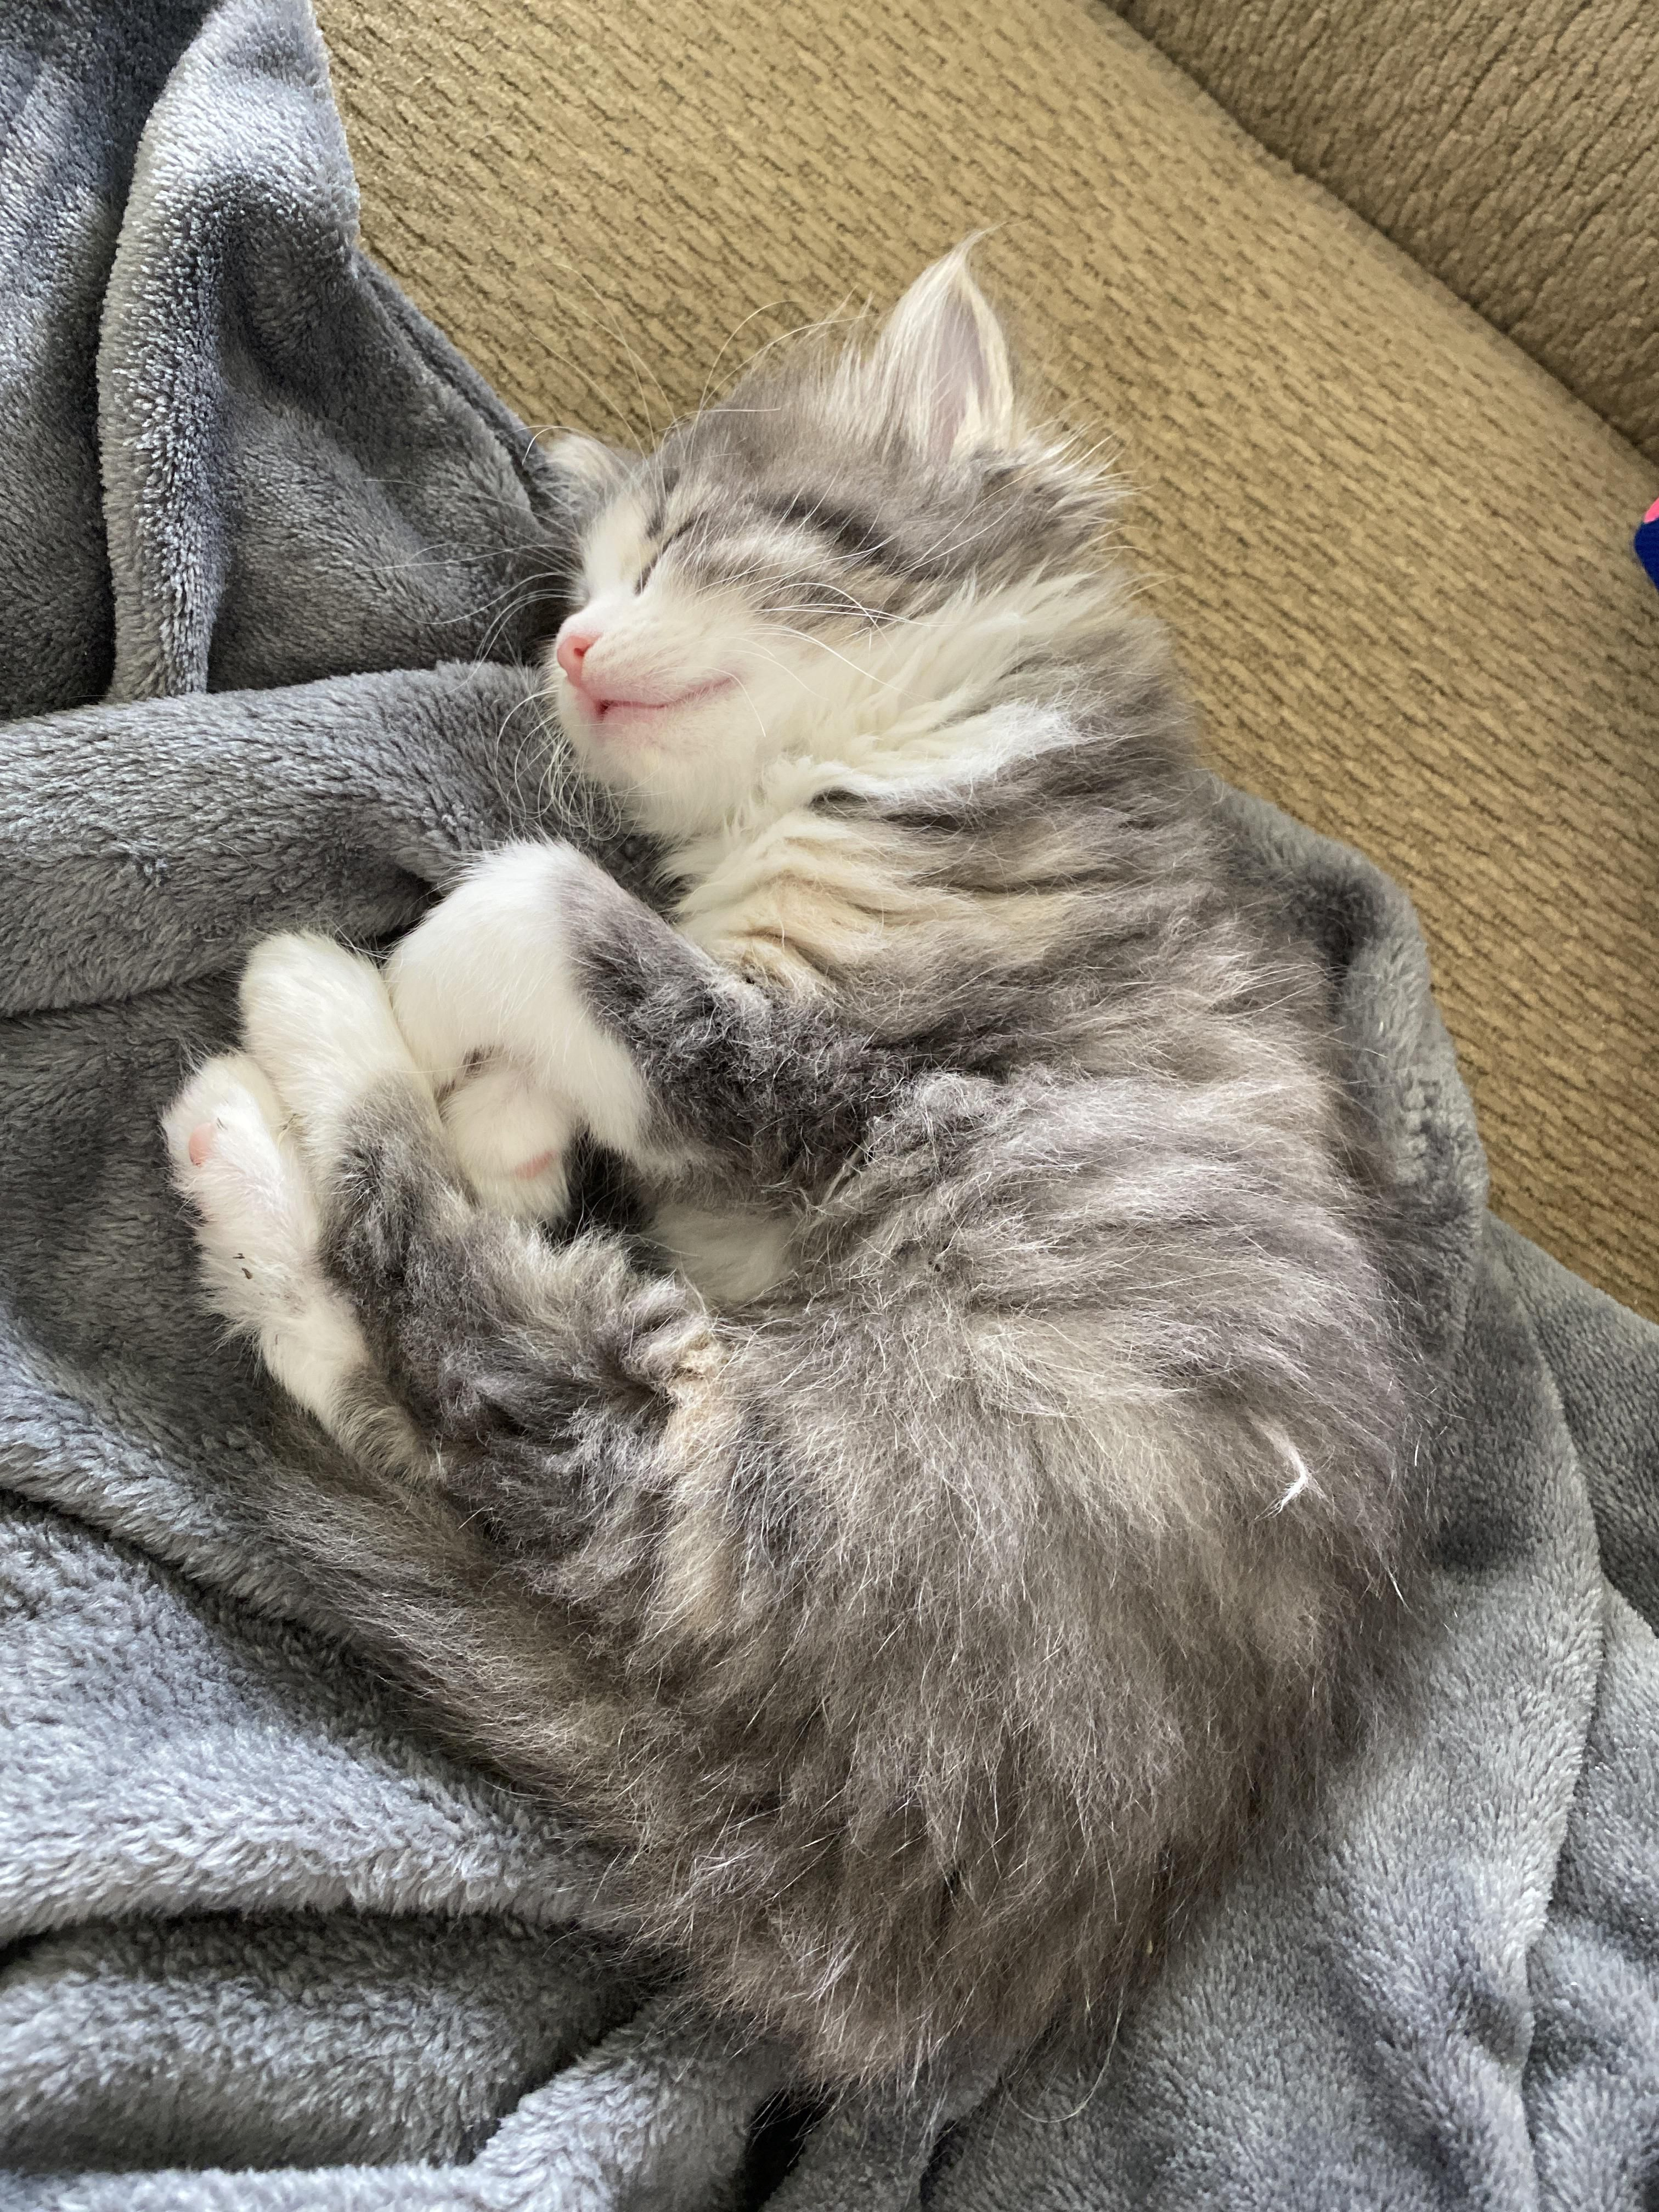 Beanie Finally Pooped In Her Liter Box For First Time And Now Shes Exhaustedhttps I Redd It K1m66tmsqar41 Jpg In 2020 Cats Kittens Cutest Cat Pics